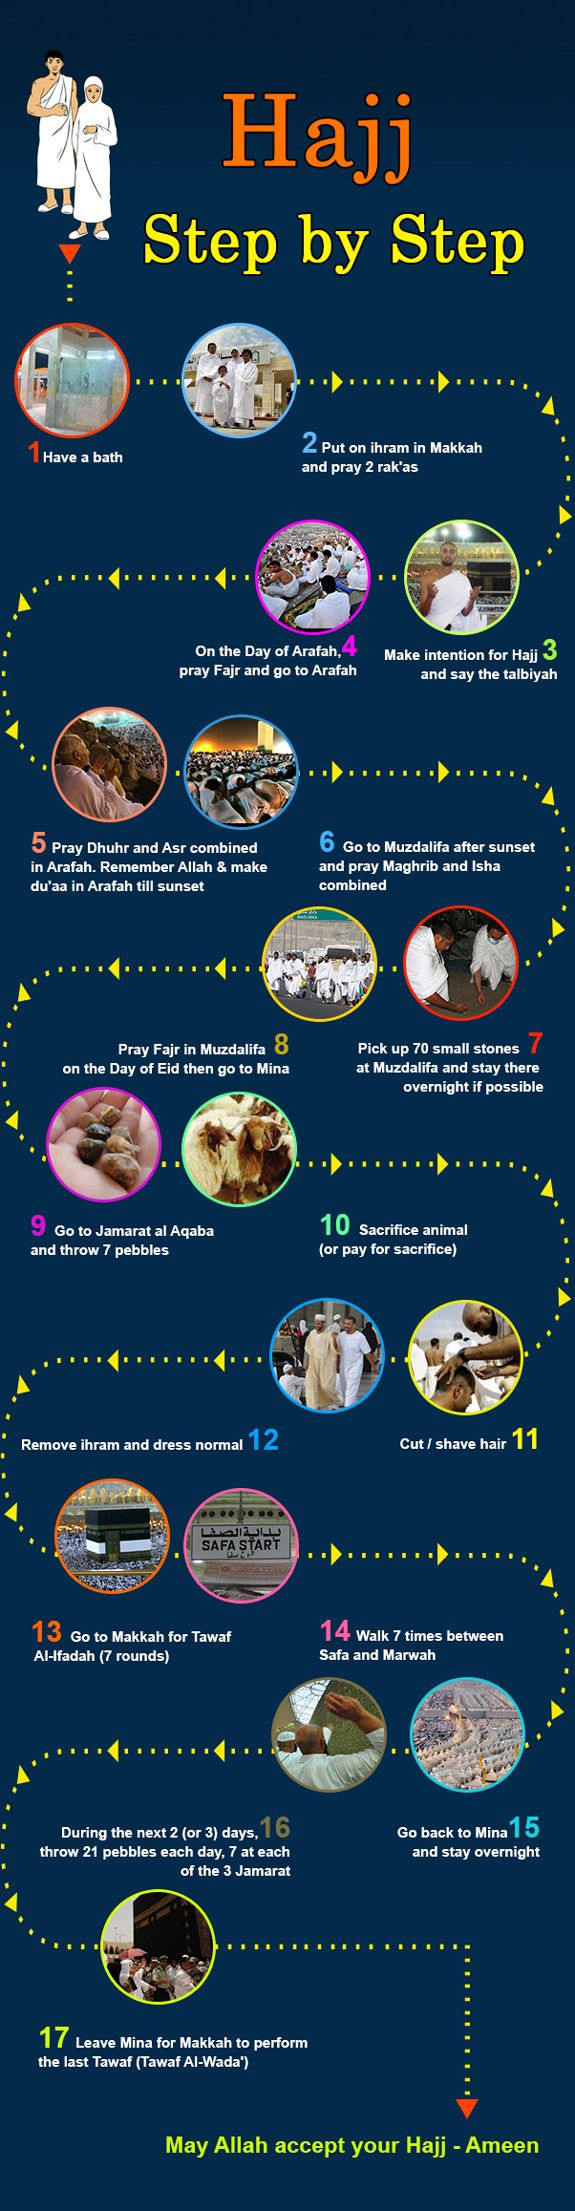 Hajj Step by Step (Infographic) - Reading Islam - Infographics - OnIslam.net and More http://www.islamic-web.com/category/hajj-info/